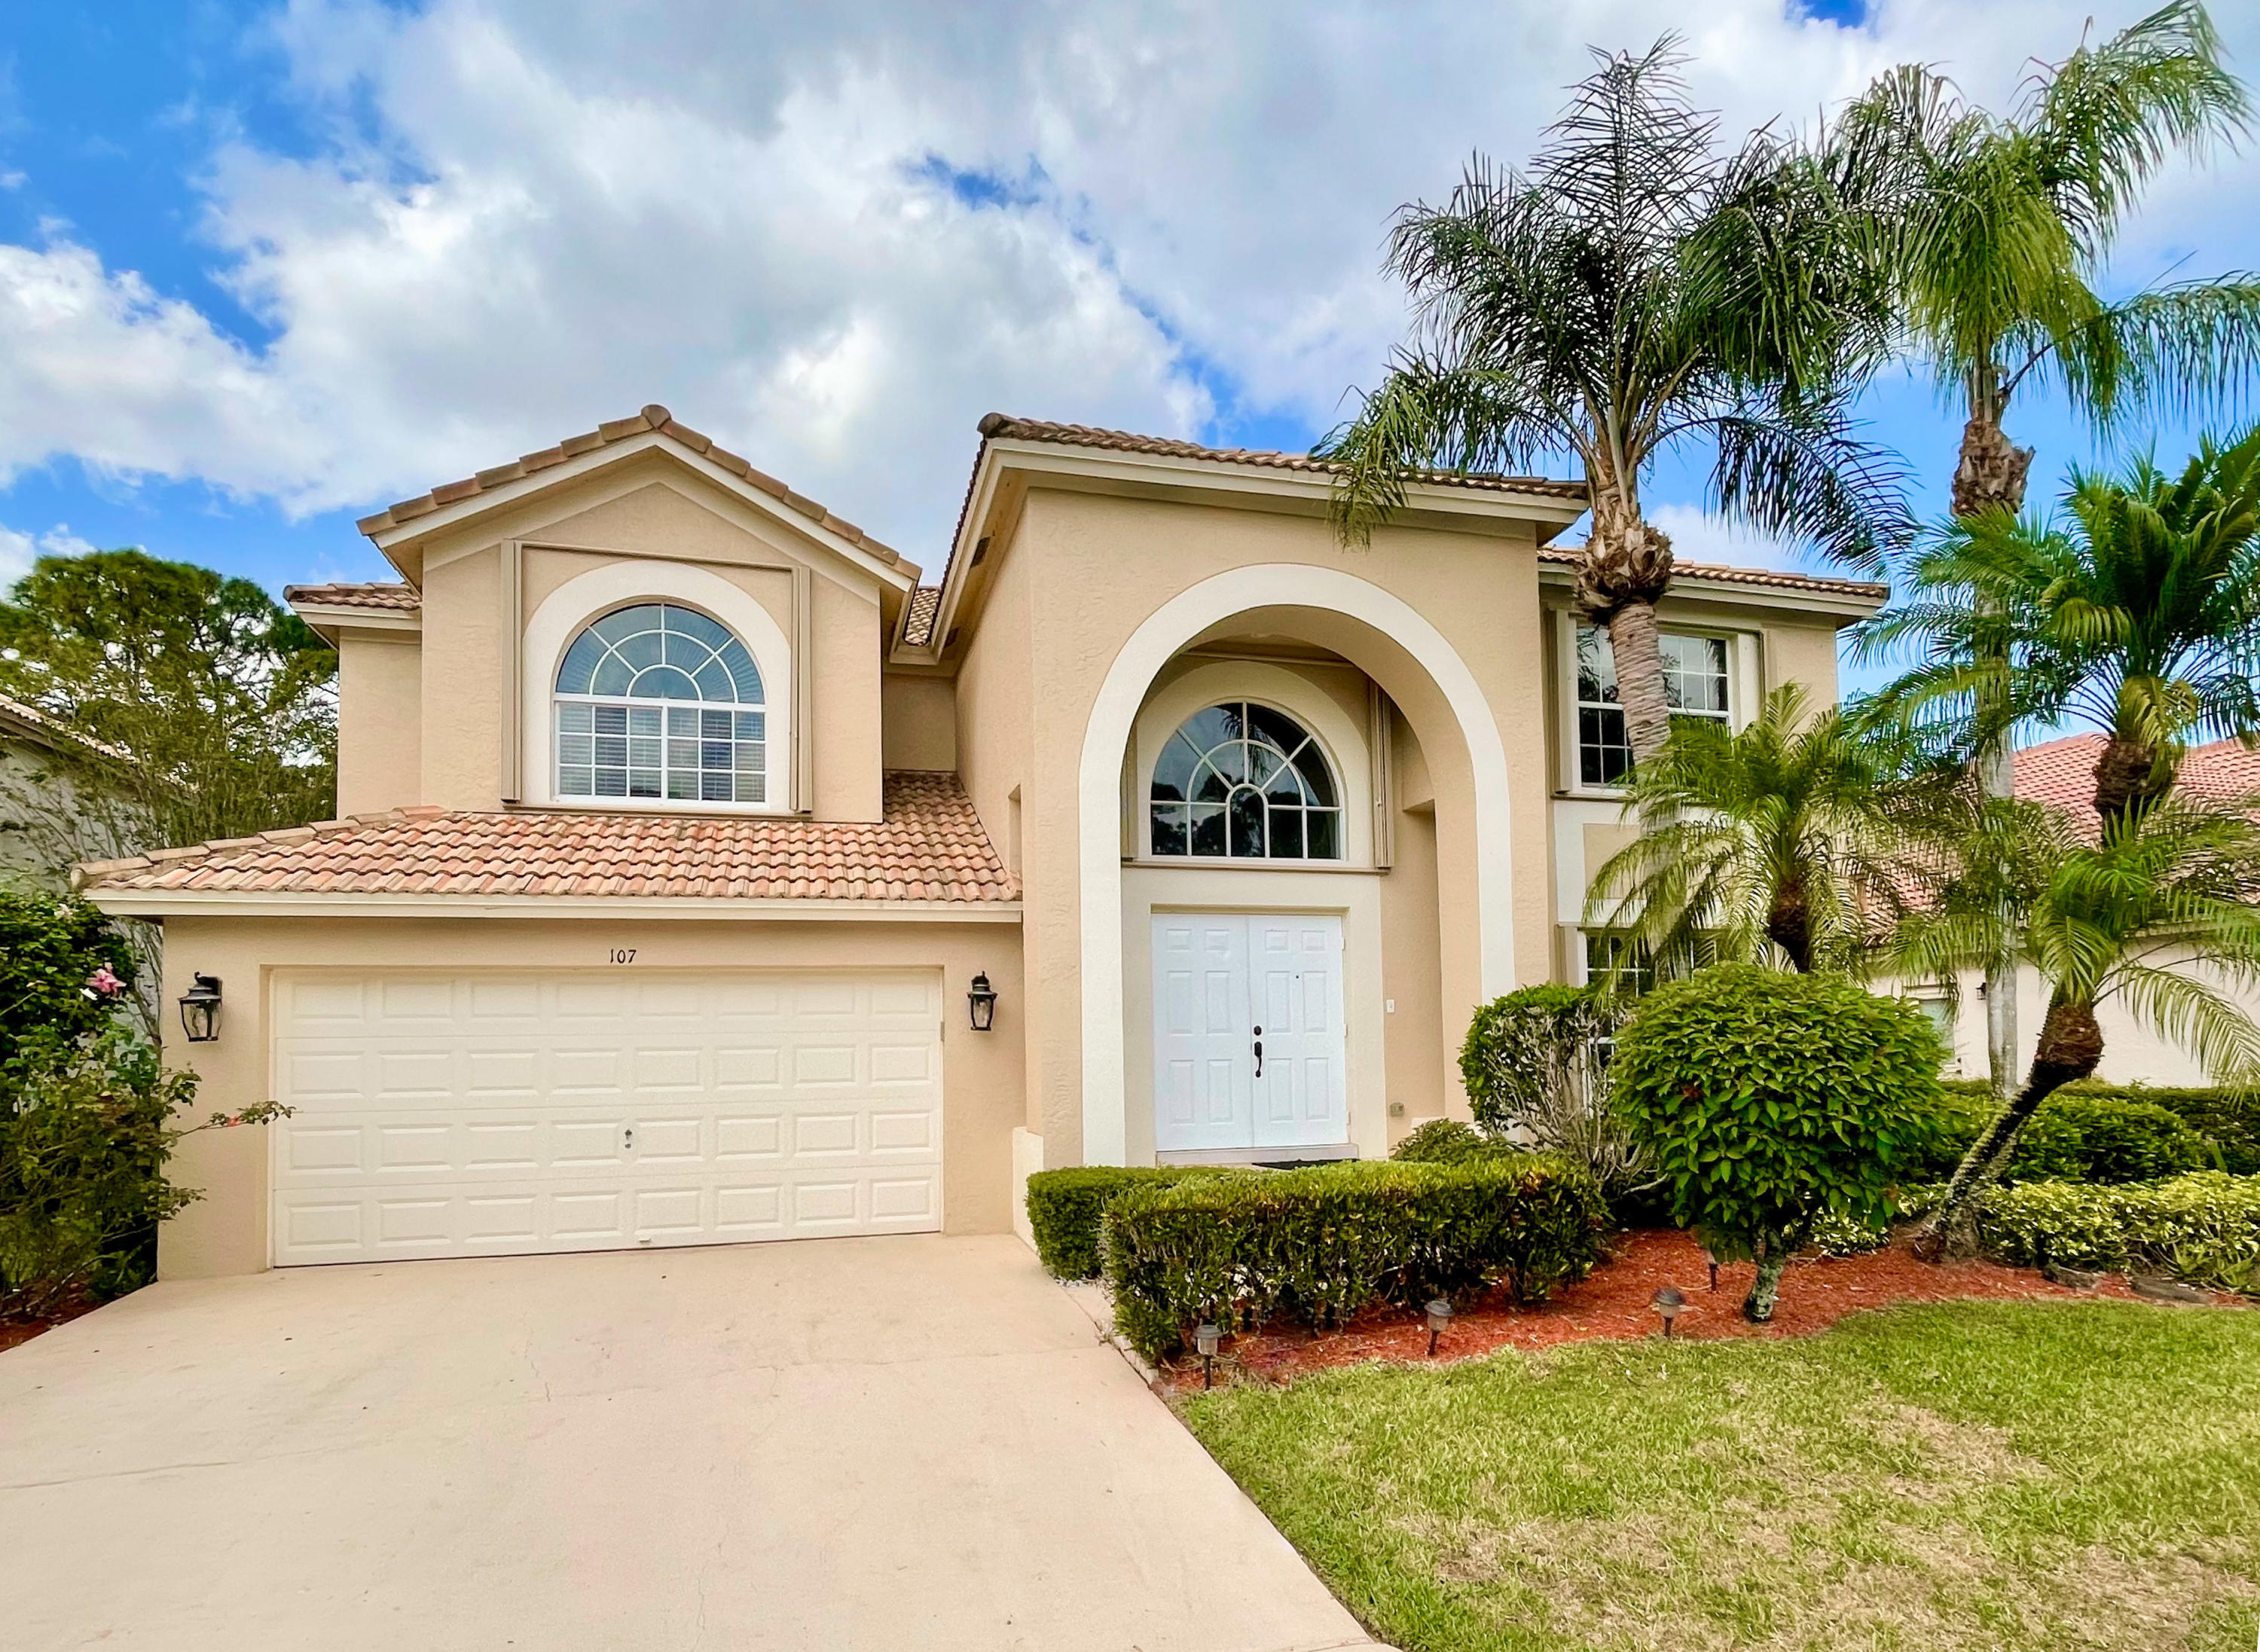 Home for sale in Bent Tree Palm Beach Gardens Florida